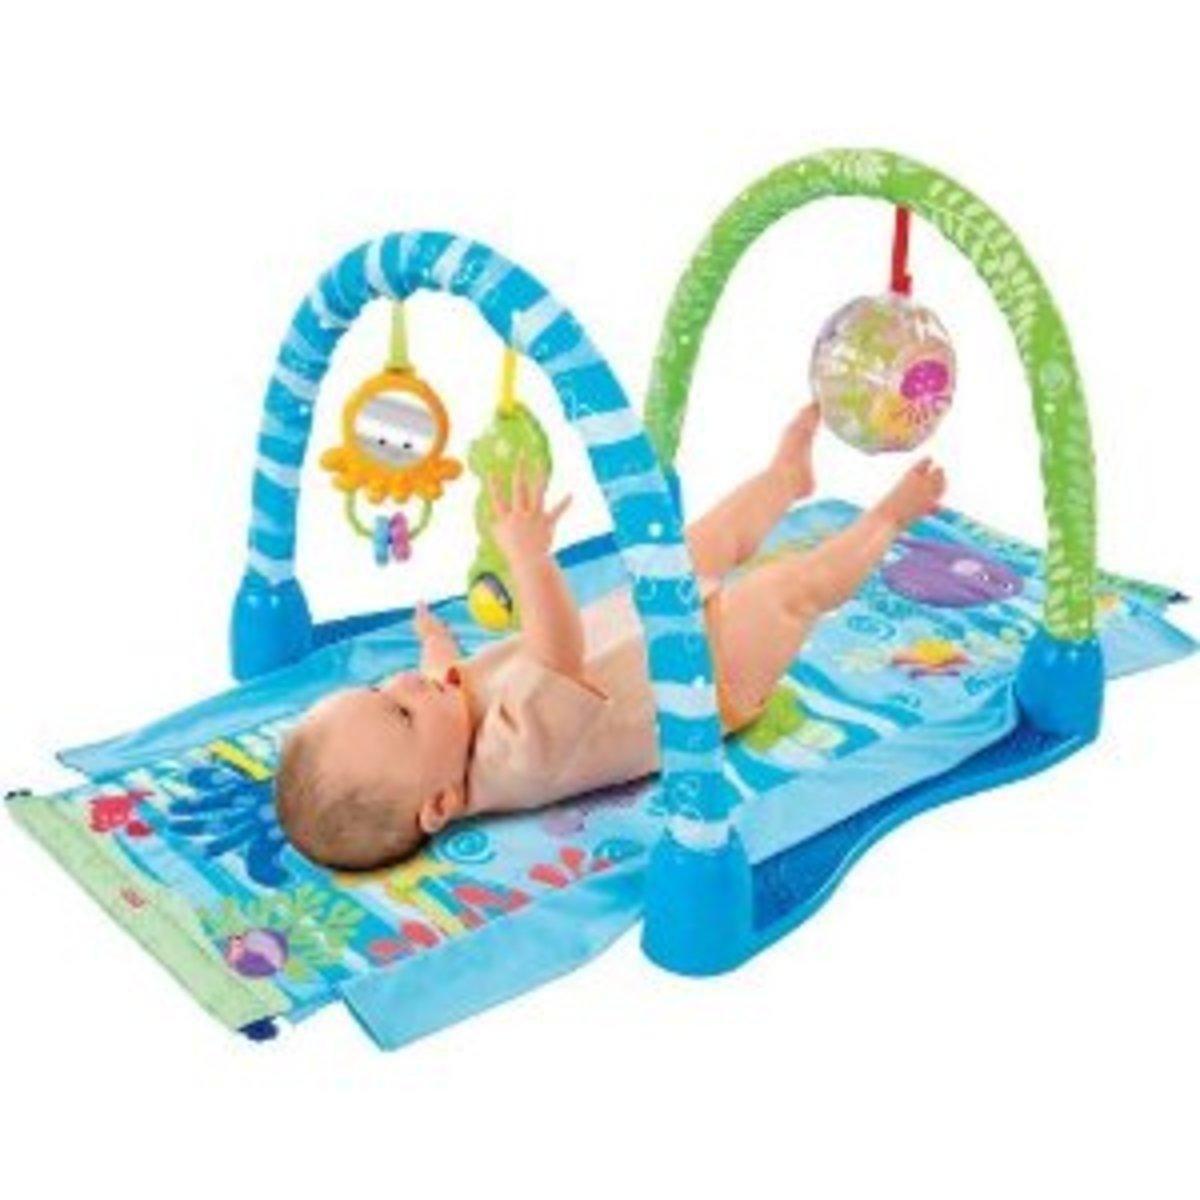 Fisher Price Kick Gym and Kick and Play Piano, Great First Baby Lay Down Toys